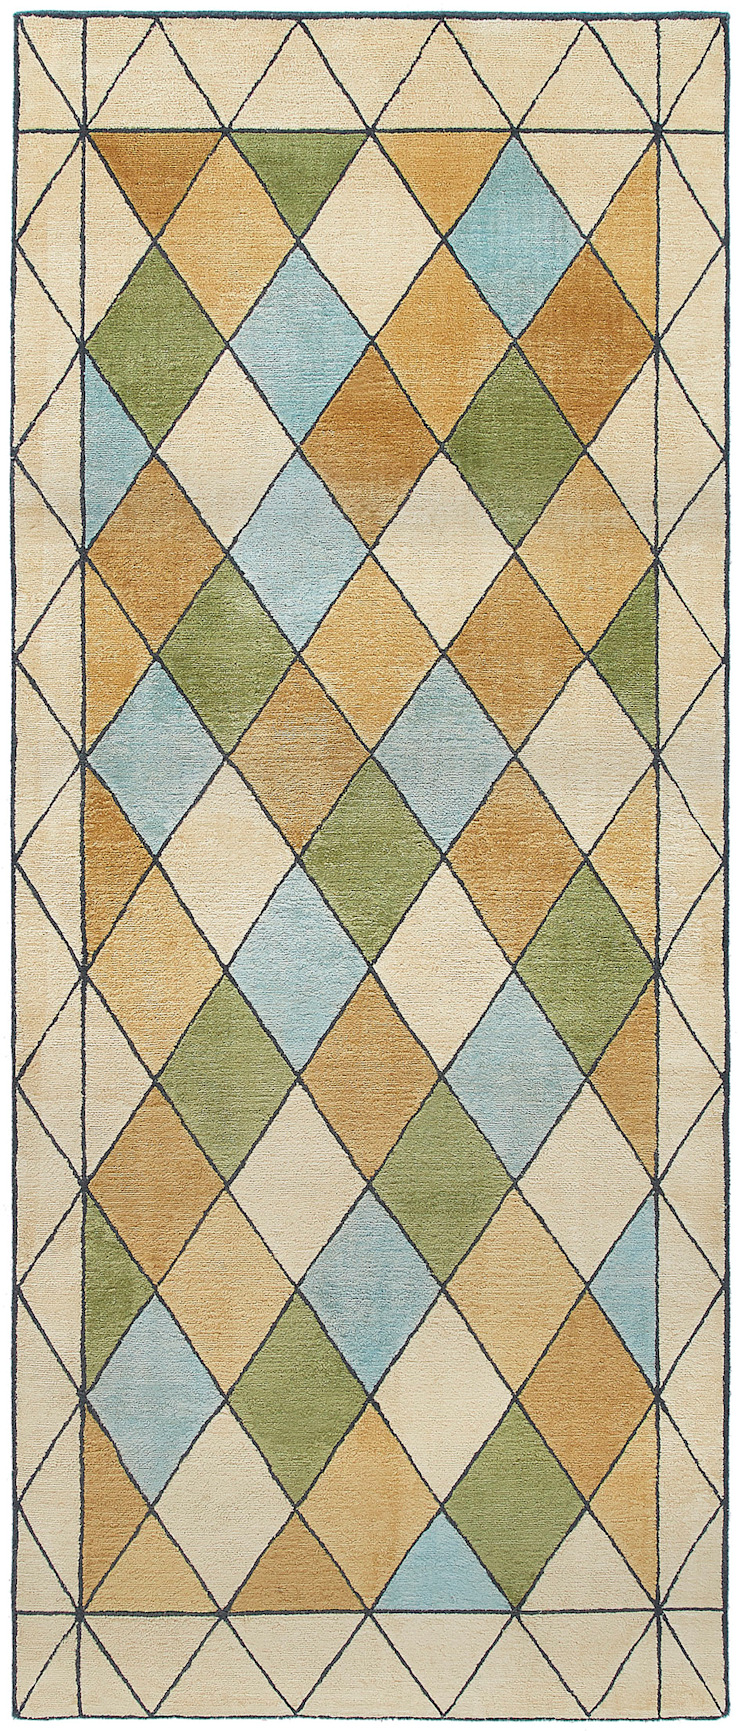 Deirdre Dyson STAINED GLASS hand knotted wool and silk runner Deirdre Dyson Carpets Ltd Walls & flooringCarpets & rugs Silk Amber/Gold